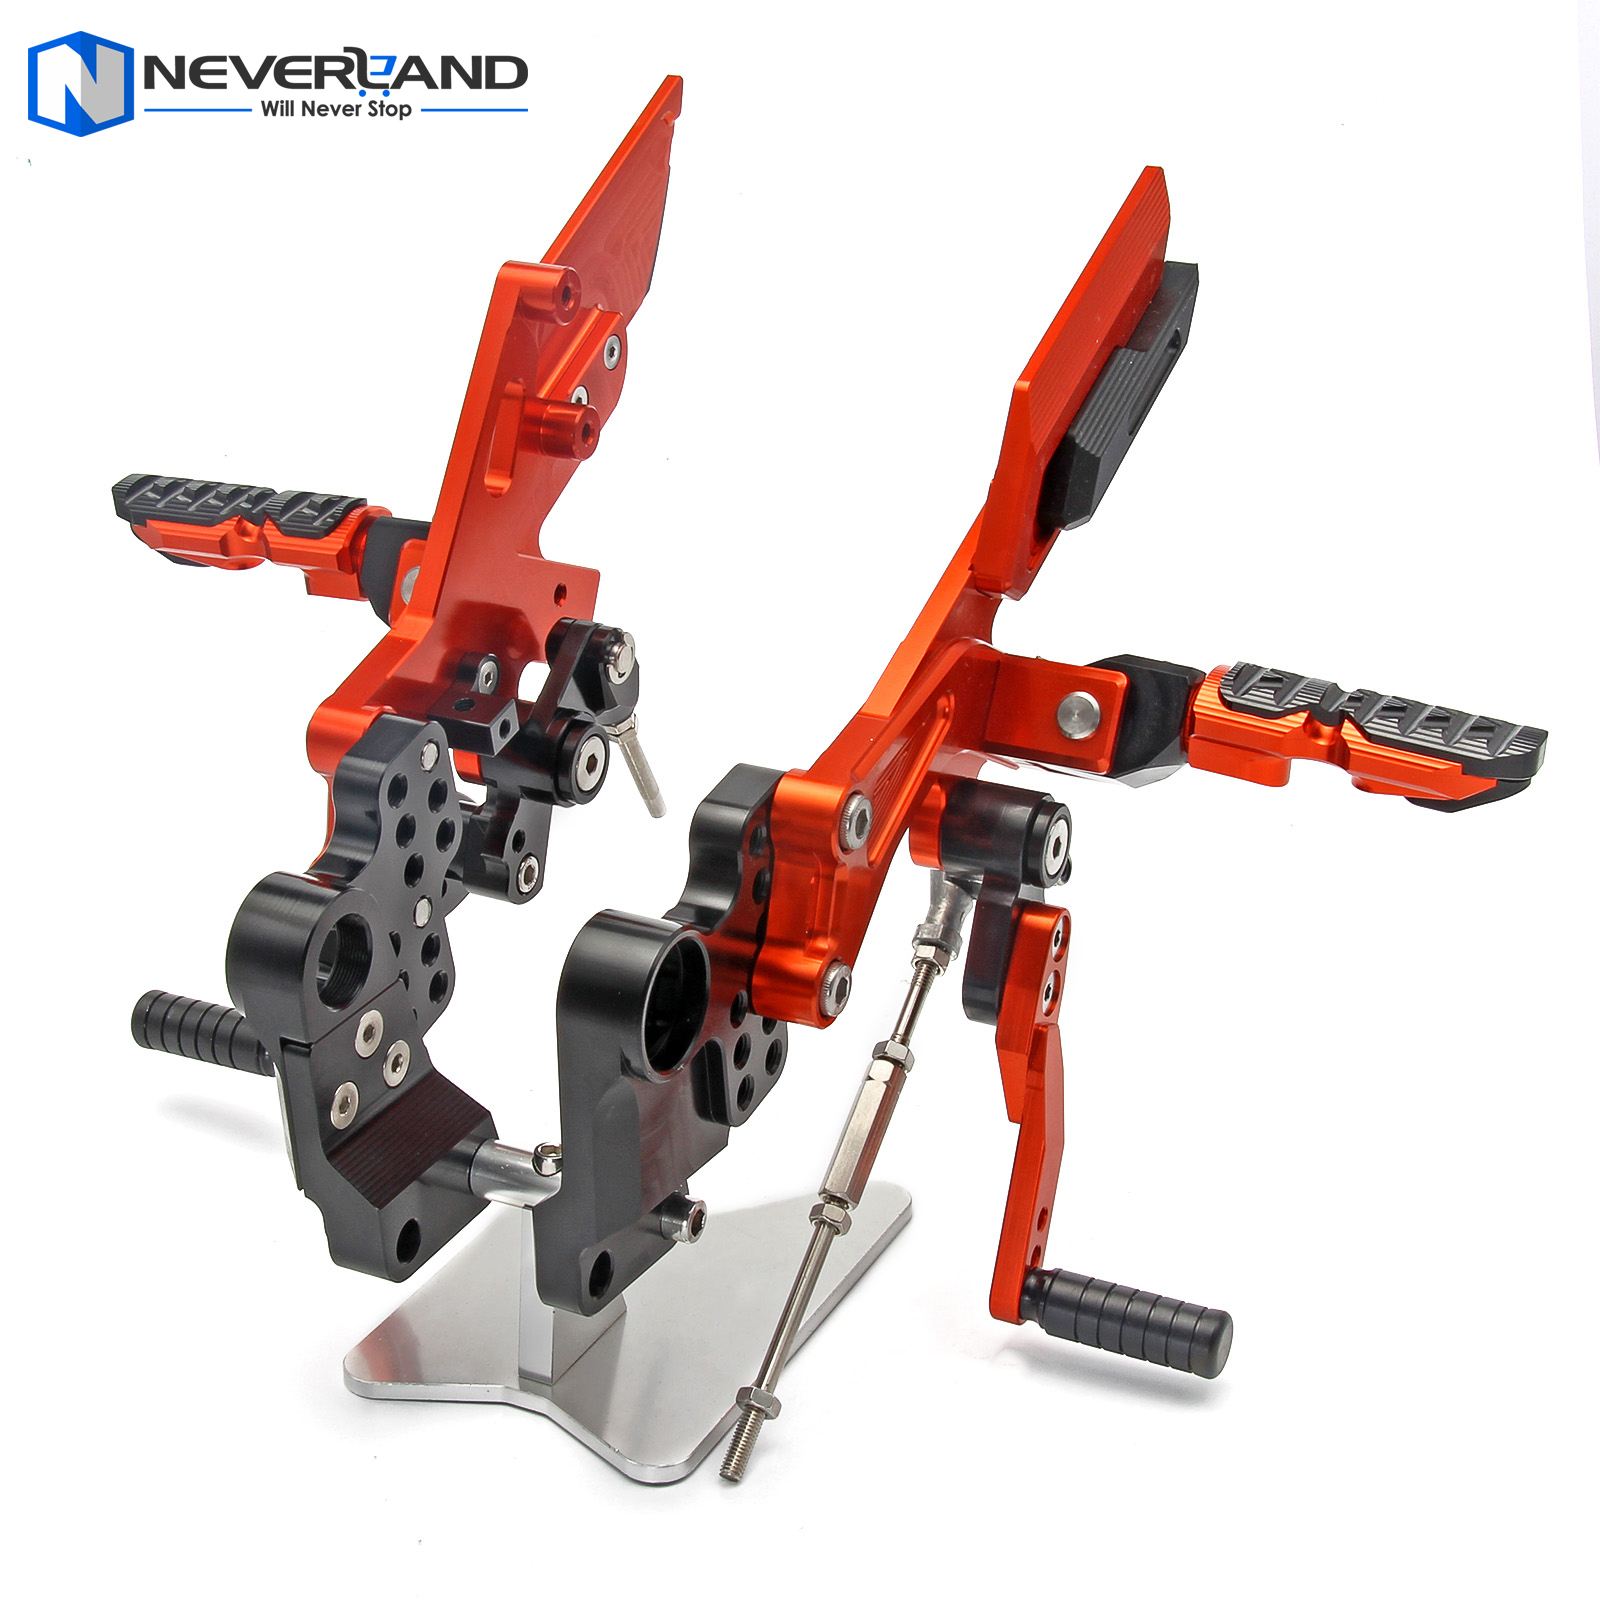 NEVERLAND CNC Adjustable Rider Rear Sets Rearset Footrest Foot Rest Pegs For KTM DUKE 125/200 2011-2014 2012 2013 Orange цена